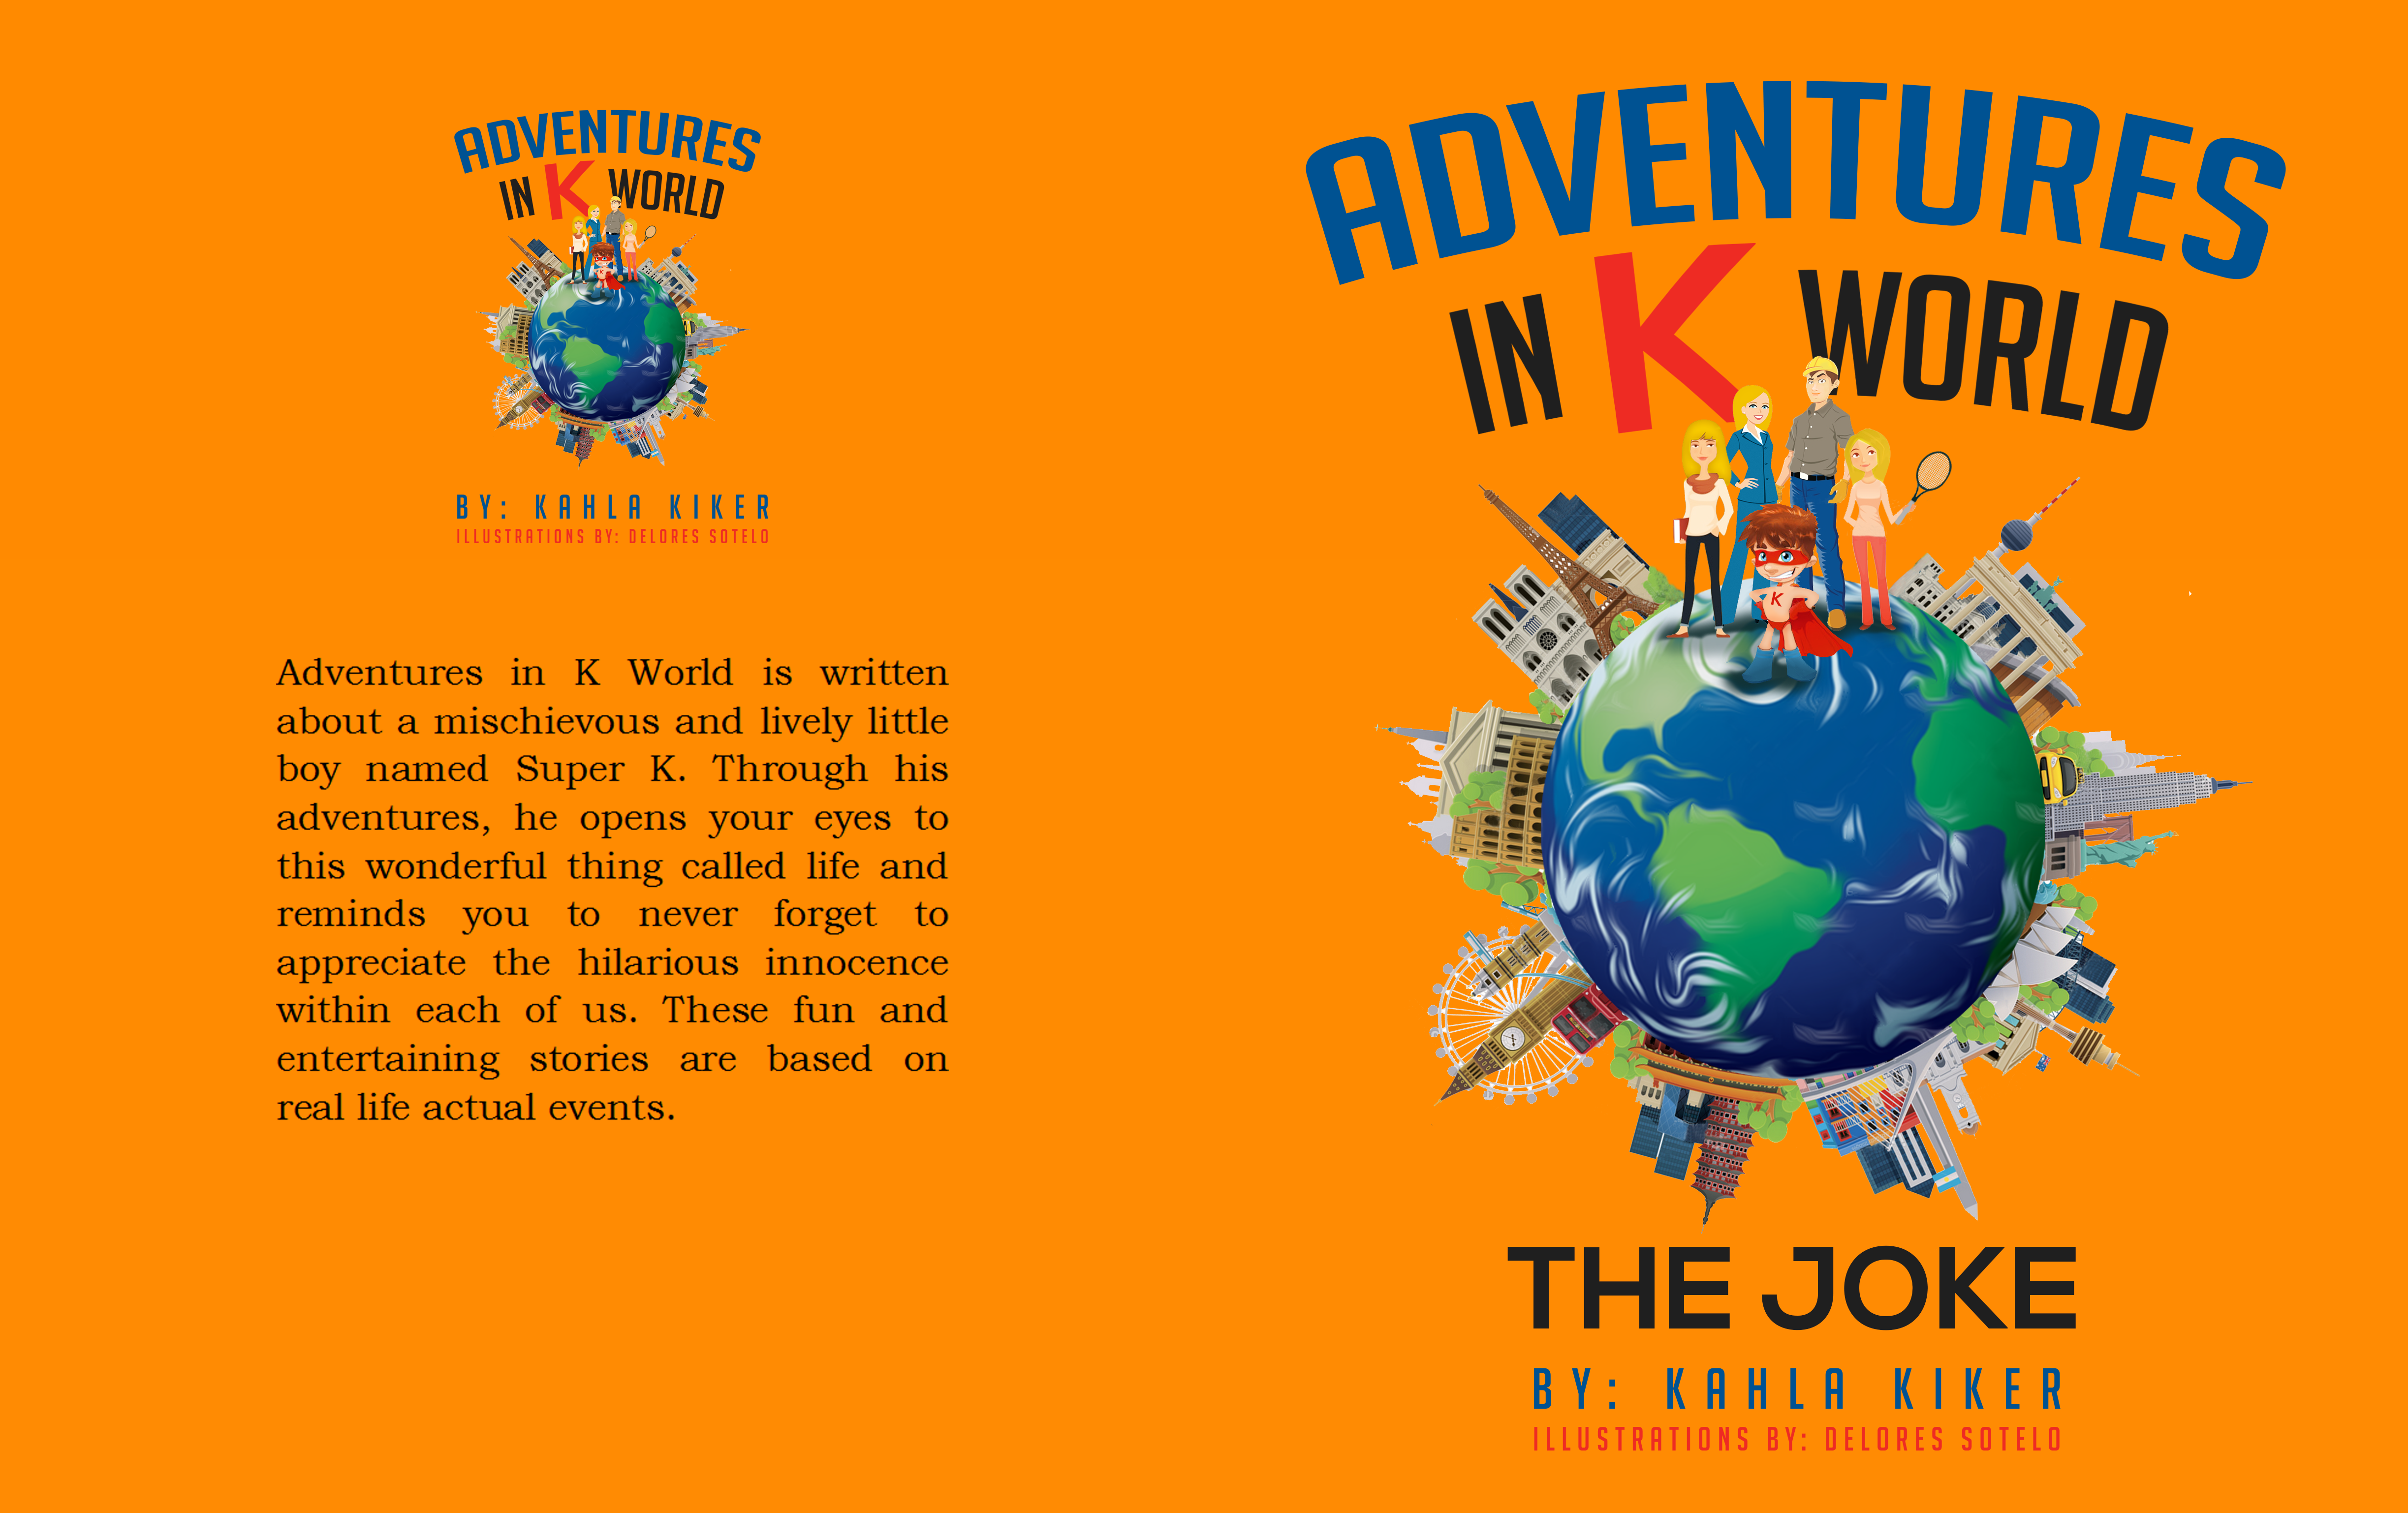 Adventures in K World - Next 2 Book Covers